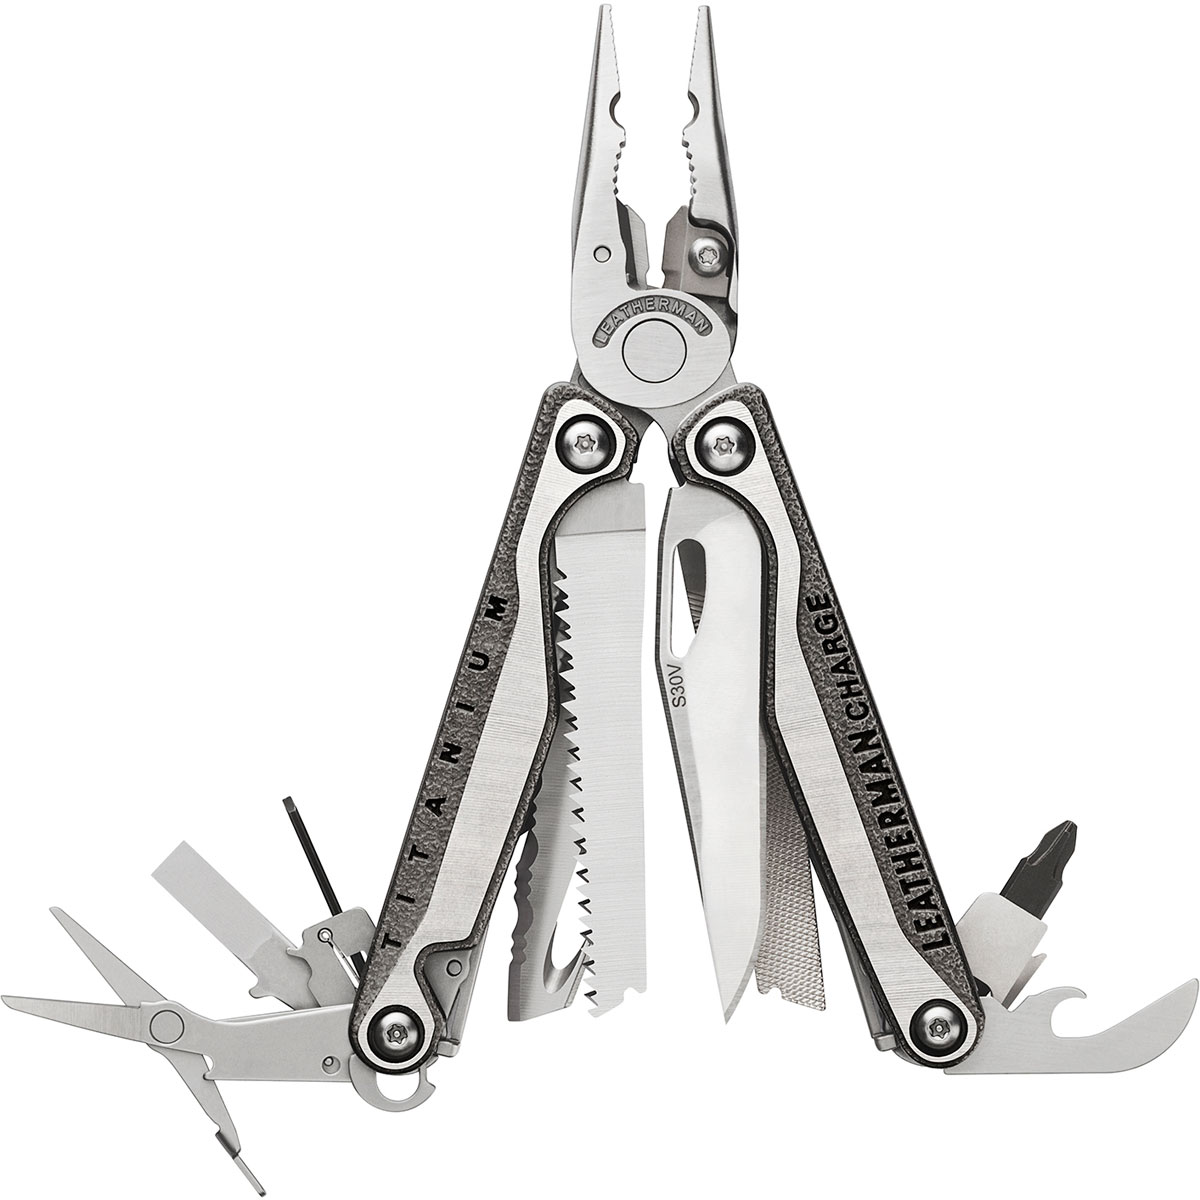 Мультитул Leatherman Charge Plus TTI, цвет: металлик мультитул leatherman charge plus tti чардж плюс тти